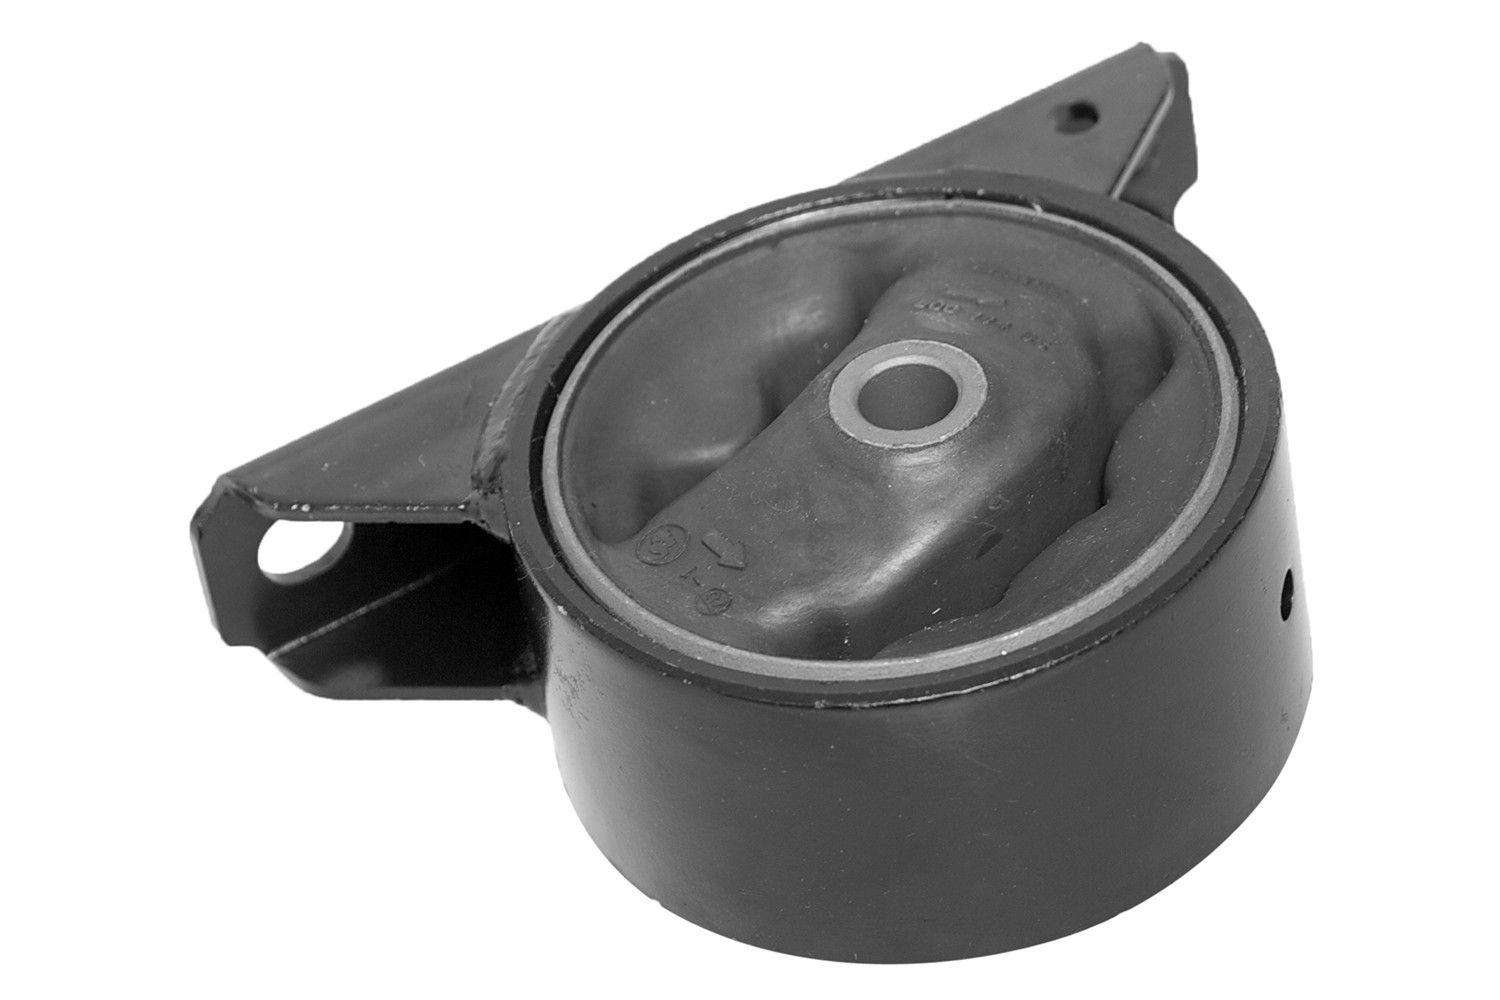 Volvo V40 Engine Mount Replacement Apa Uro Parts Anchor Beck 2001 V4 0 2000 Rear Right 4 Cyl 19l Westar Em 5518